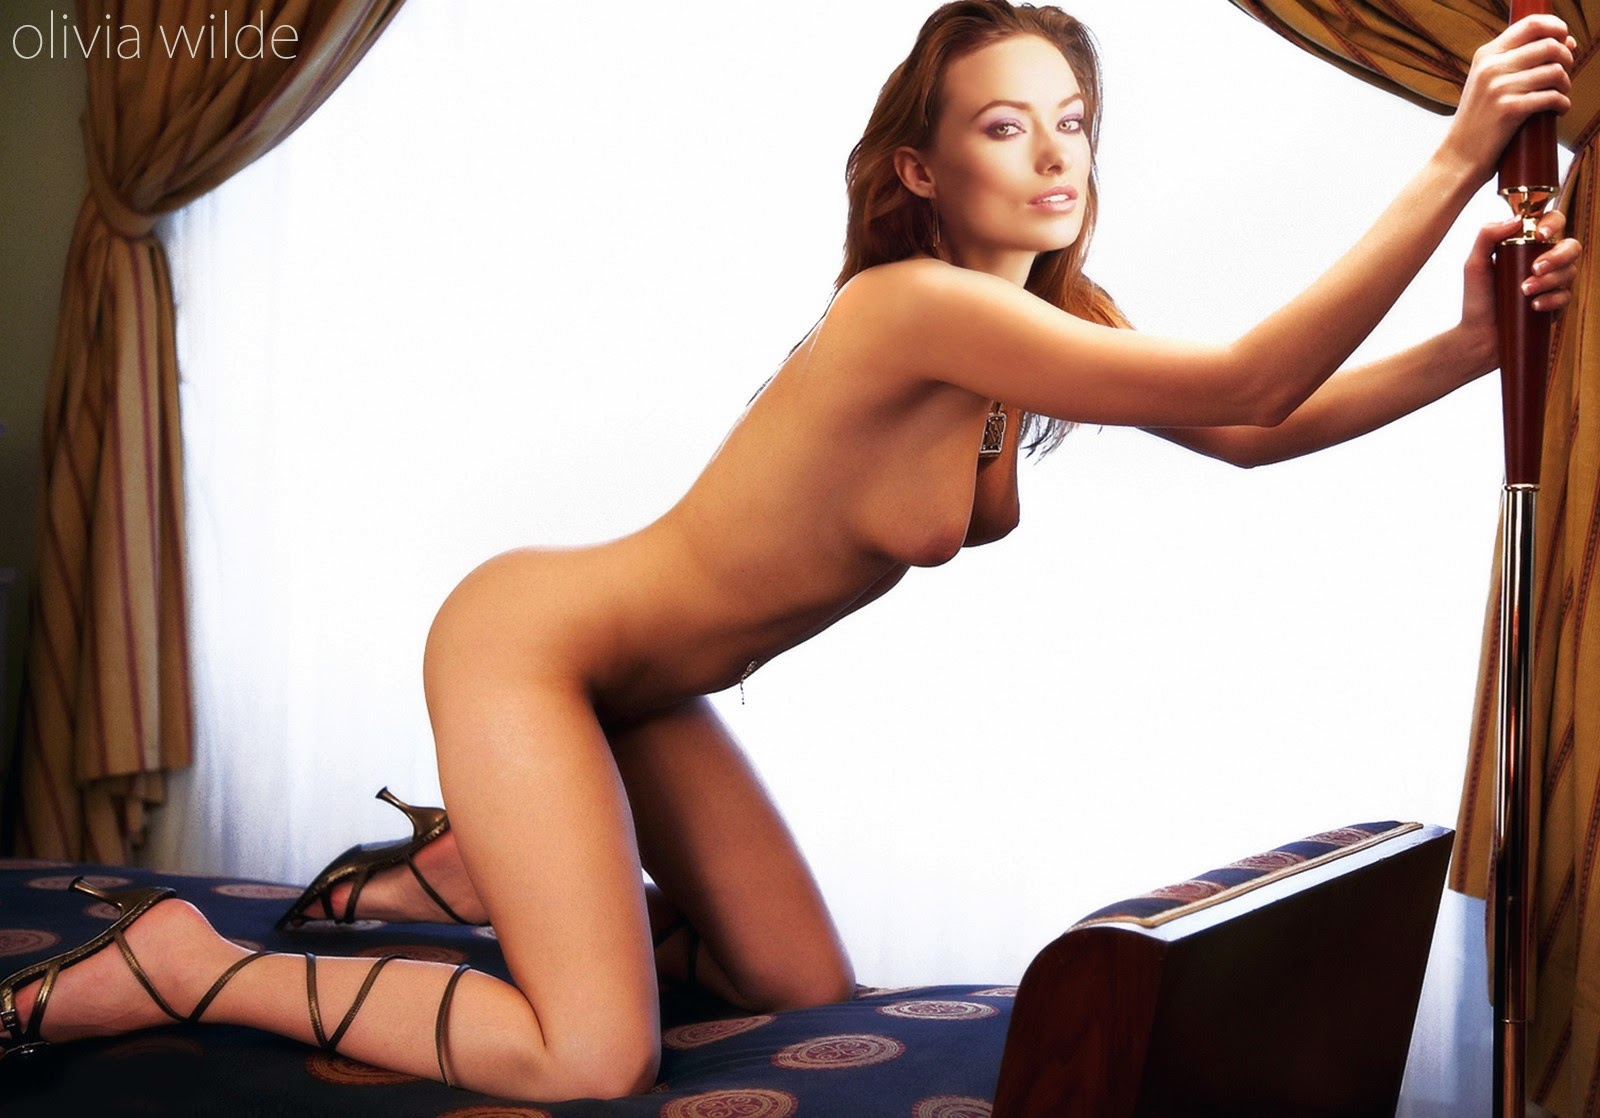 nude photos of olivia wilde